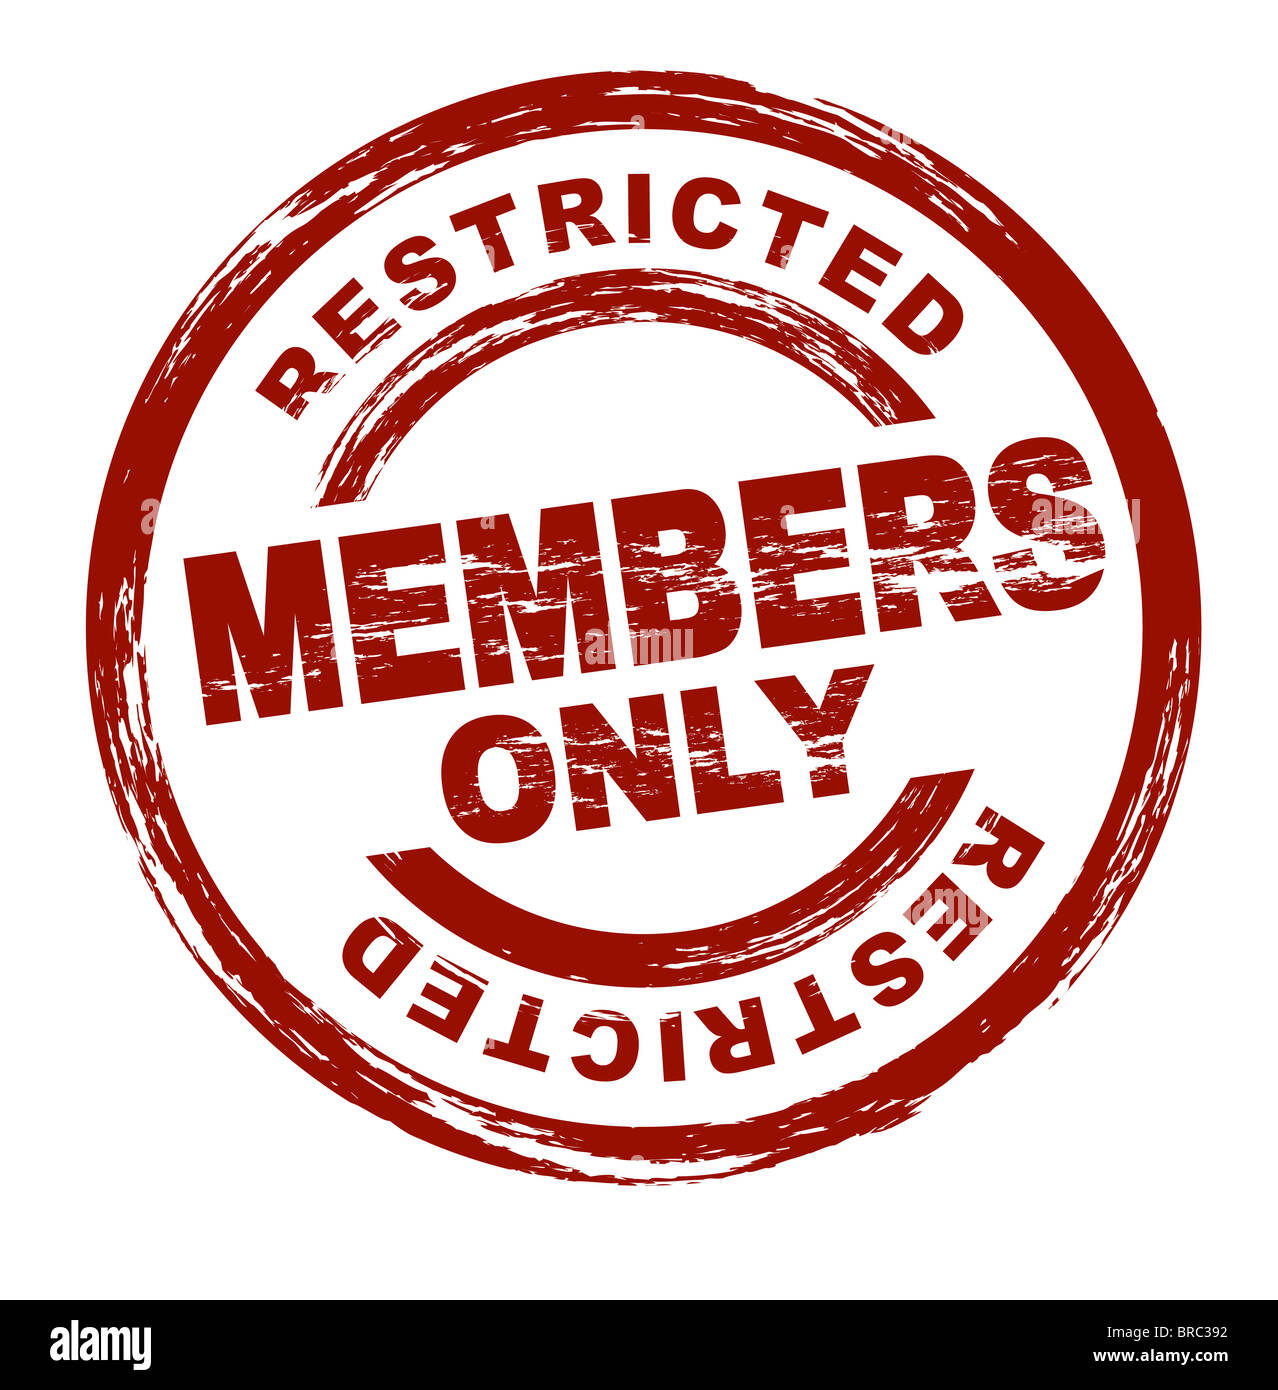 A stylized red stamp symbolizing a restricted member area. All on white background. - Stock Image